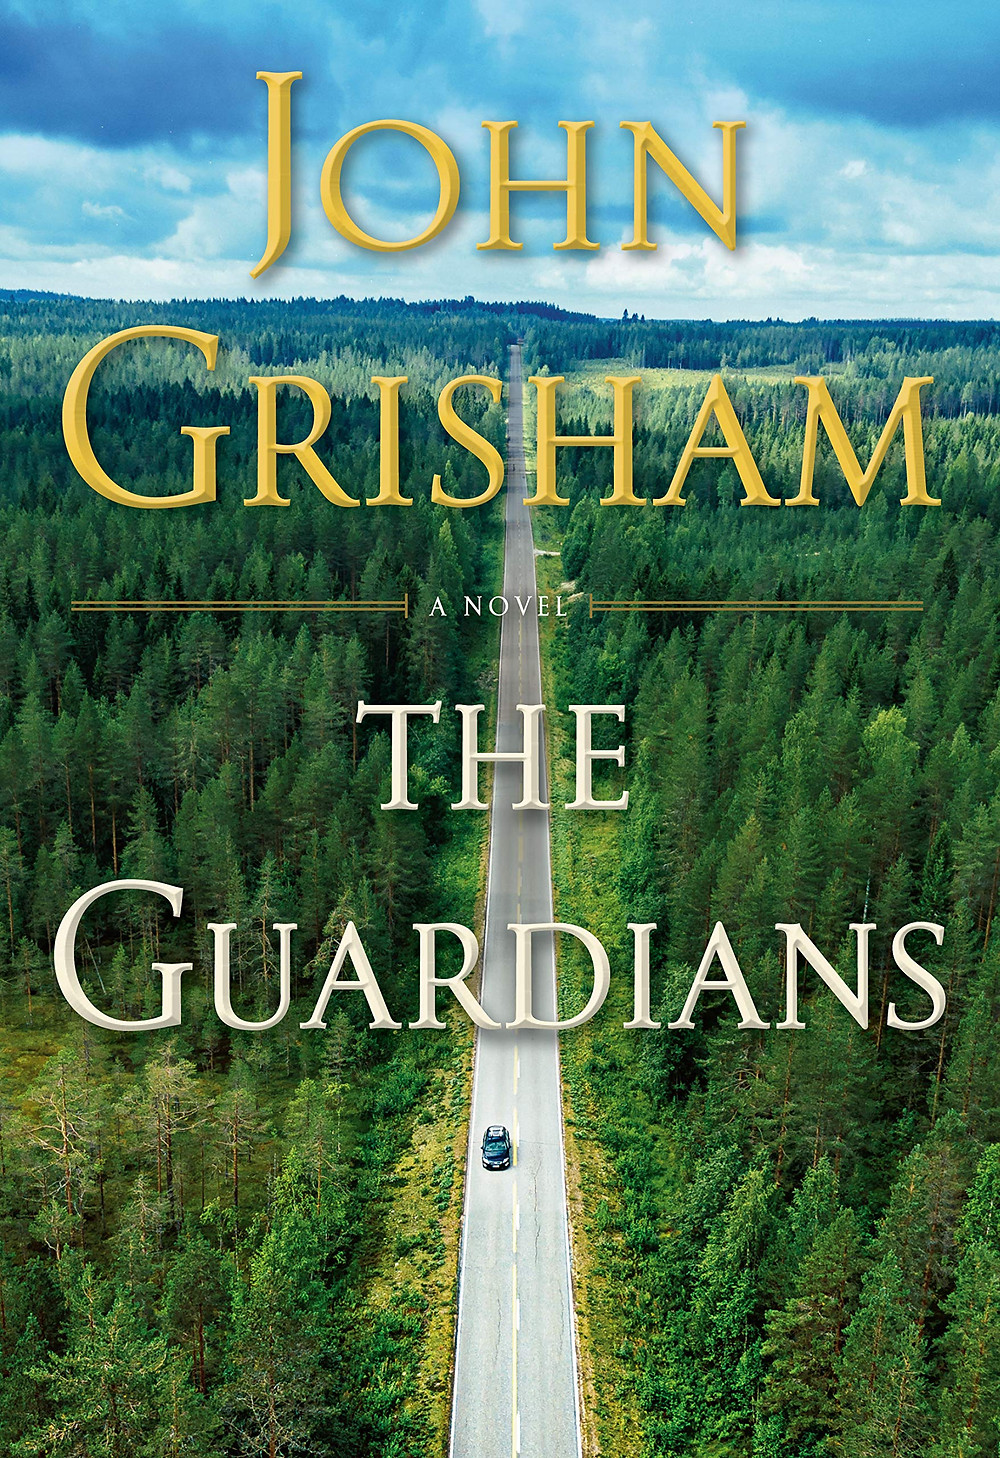 The Guardians by John Grisham - Book Recommendation